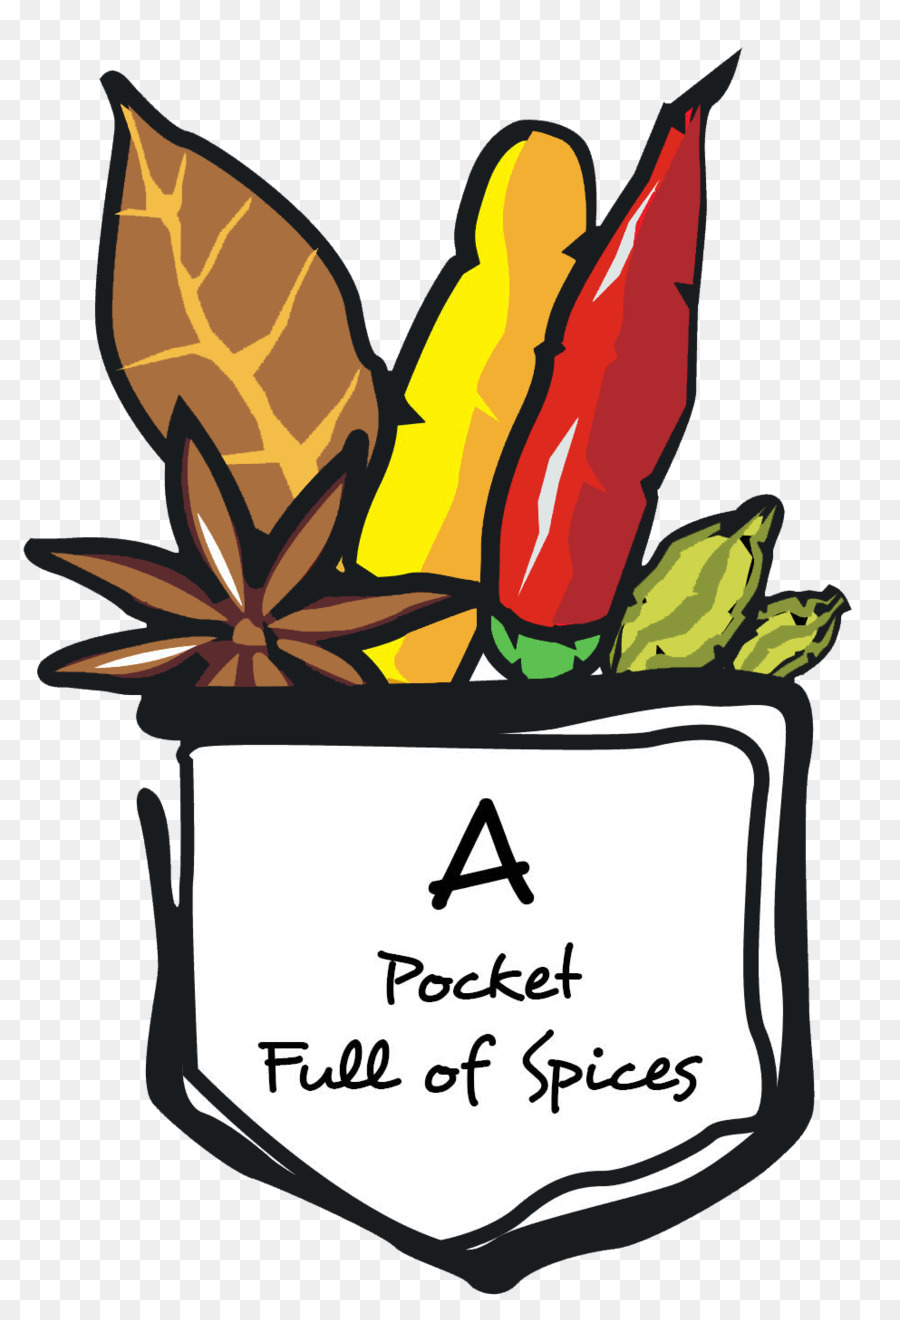 Indian spices clipart image black and white download Indian Food clipart - Food, Flower, Leaf, transparent clip art image black and white download